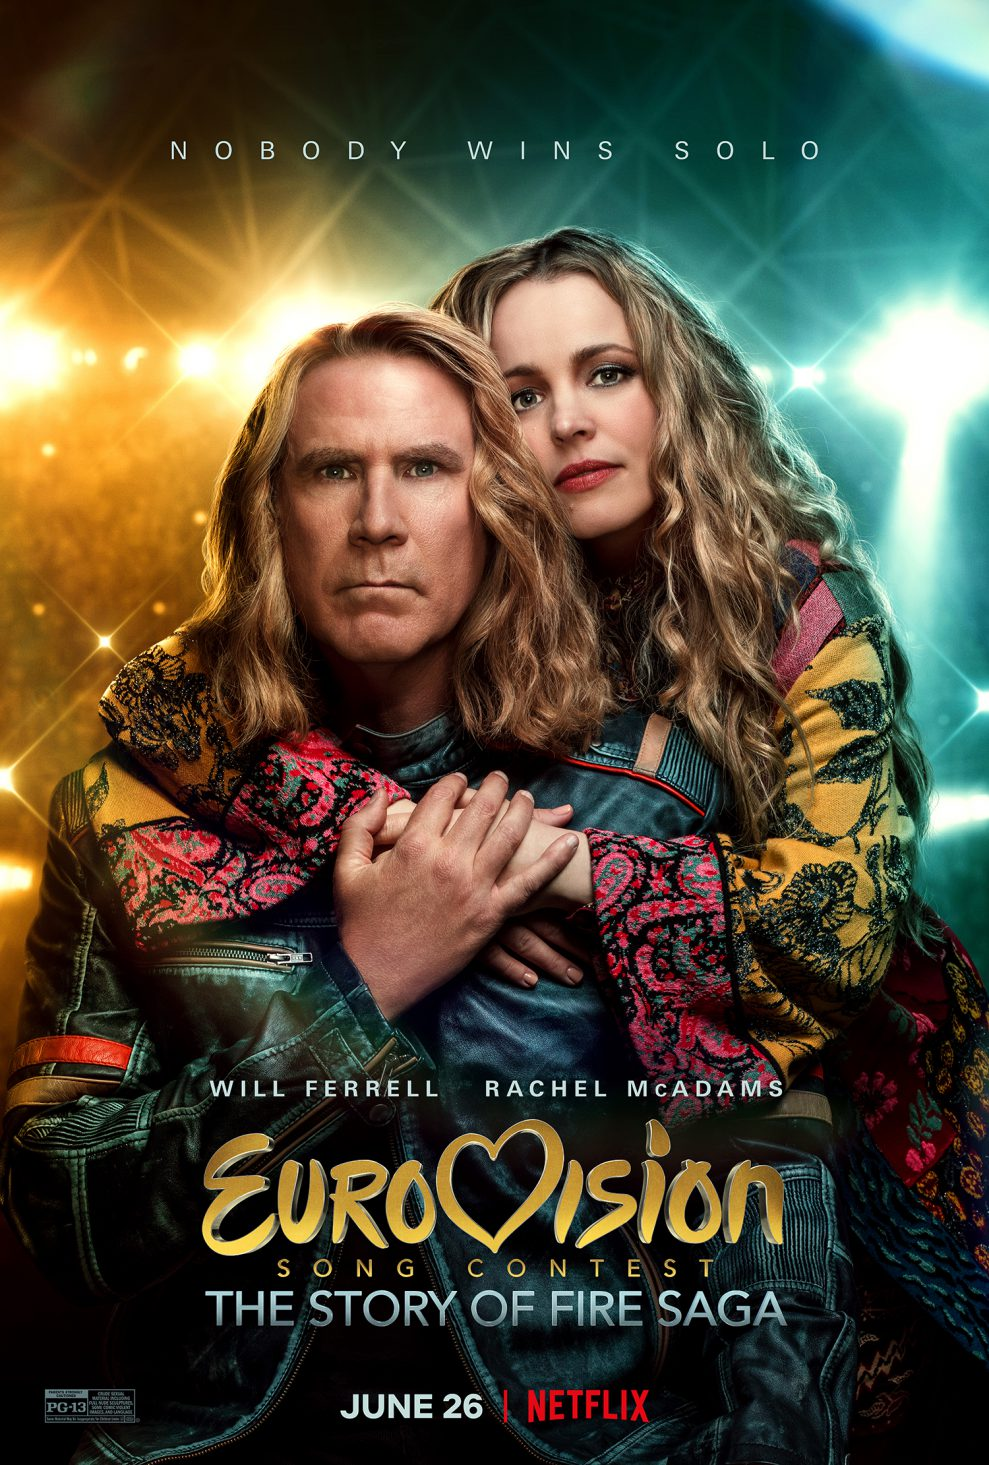 Eurovision Song Contest: The Story of Fire Saga (Foto: Netflix)